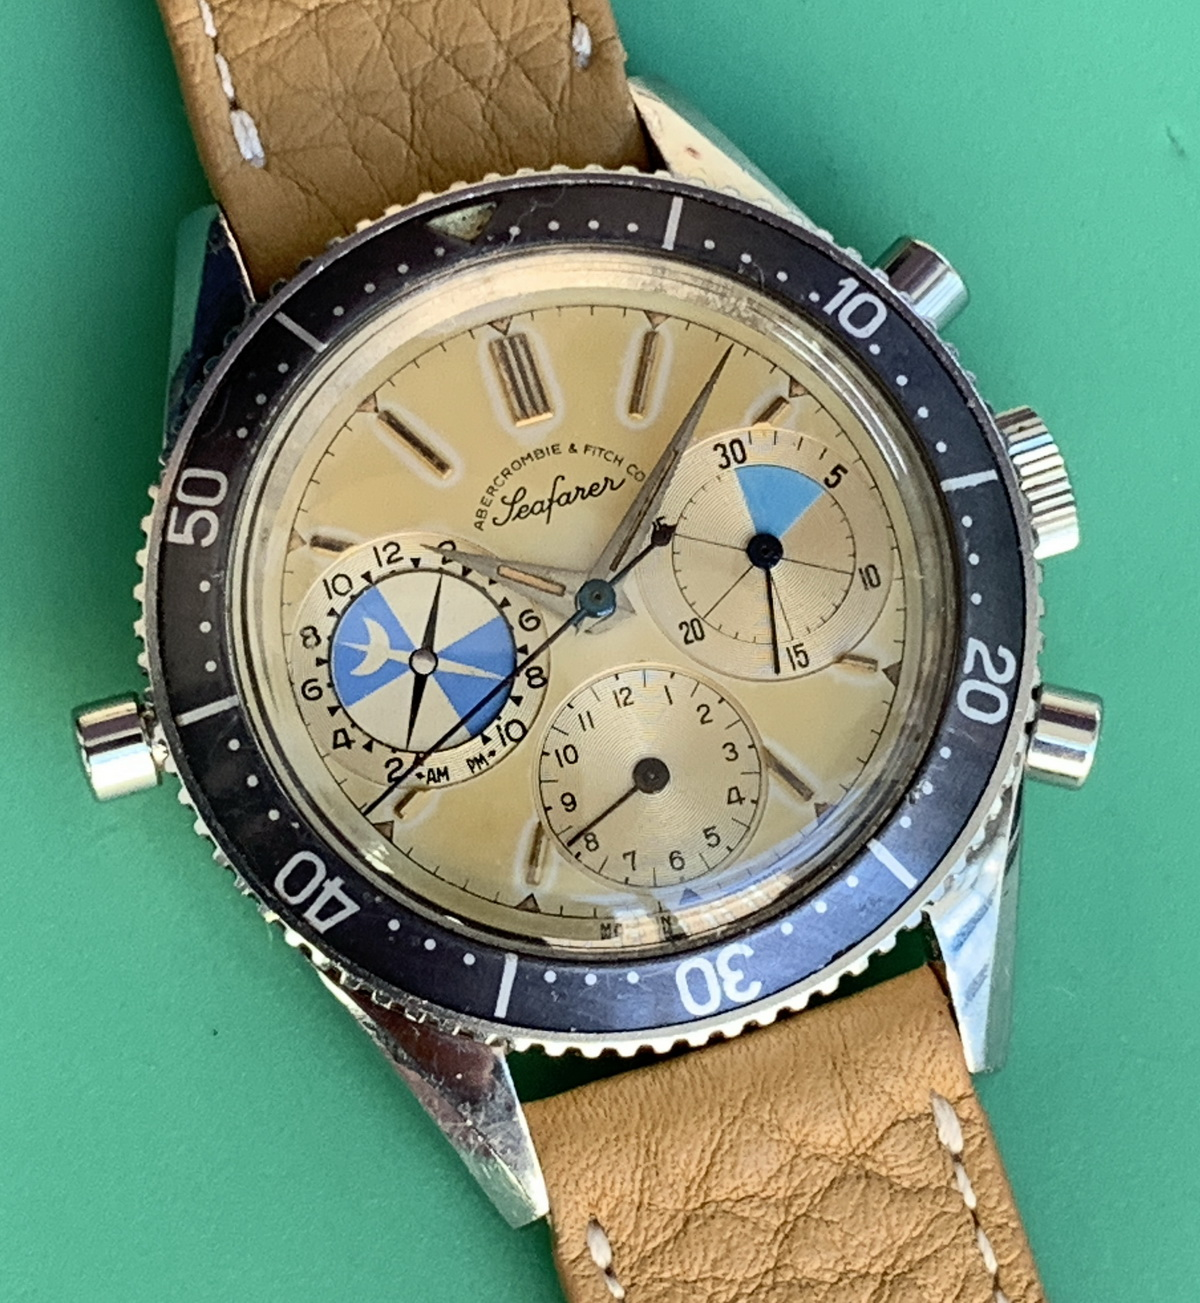 A Noteworthy Watch — Abercrombie & Fitch Seafarer, Ref 2446 (Screw-Back Case), to be Sold by Sotheby's